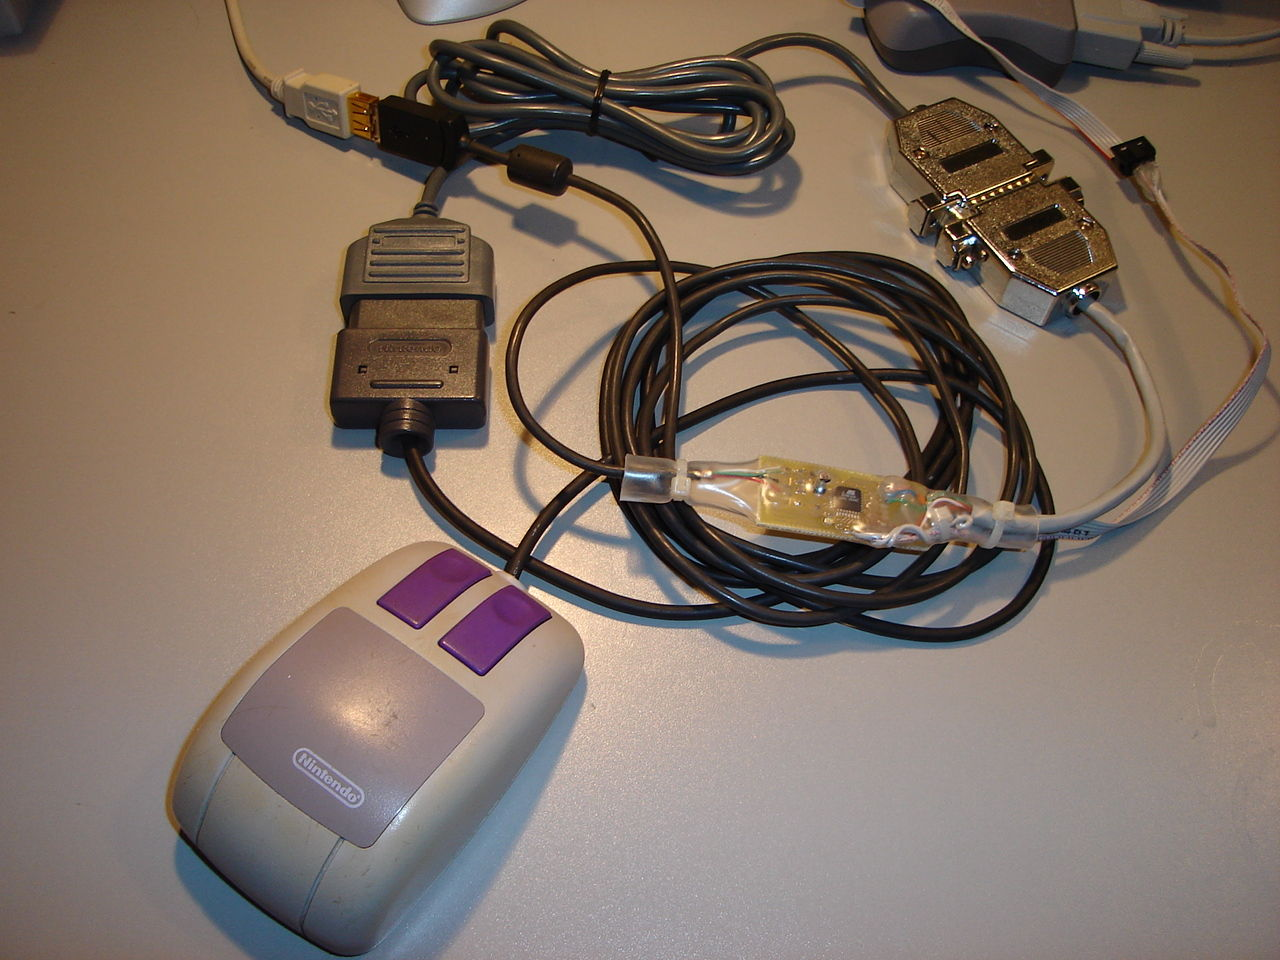 hight resolution of the mouse is now usable under any operating system supporting standard usb hid mice snes nes gamepad and mouse to usb adapter